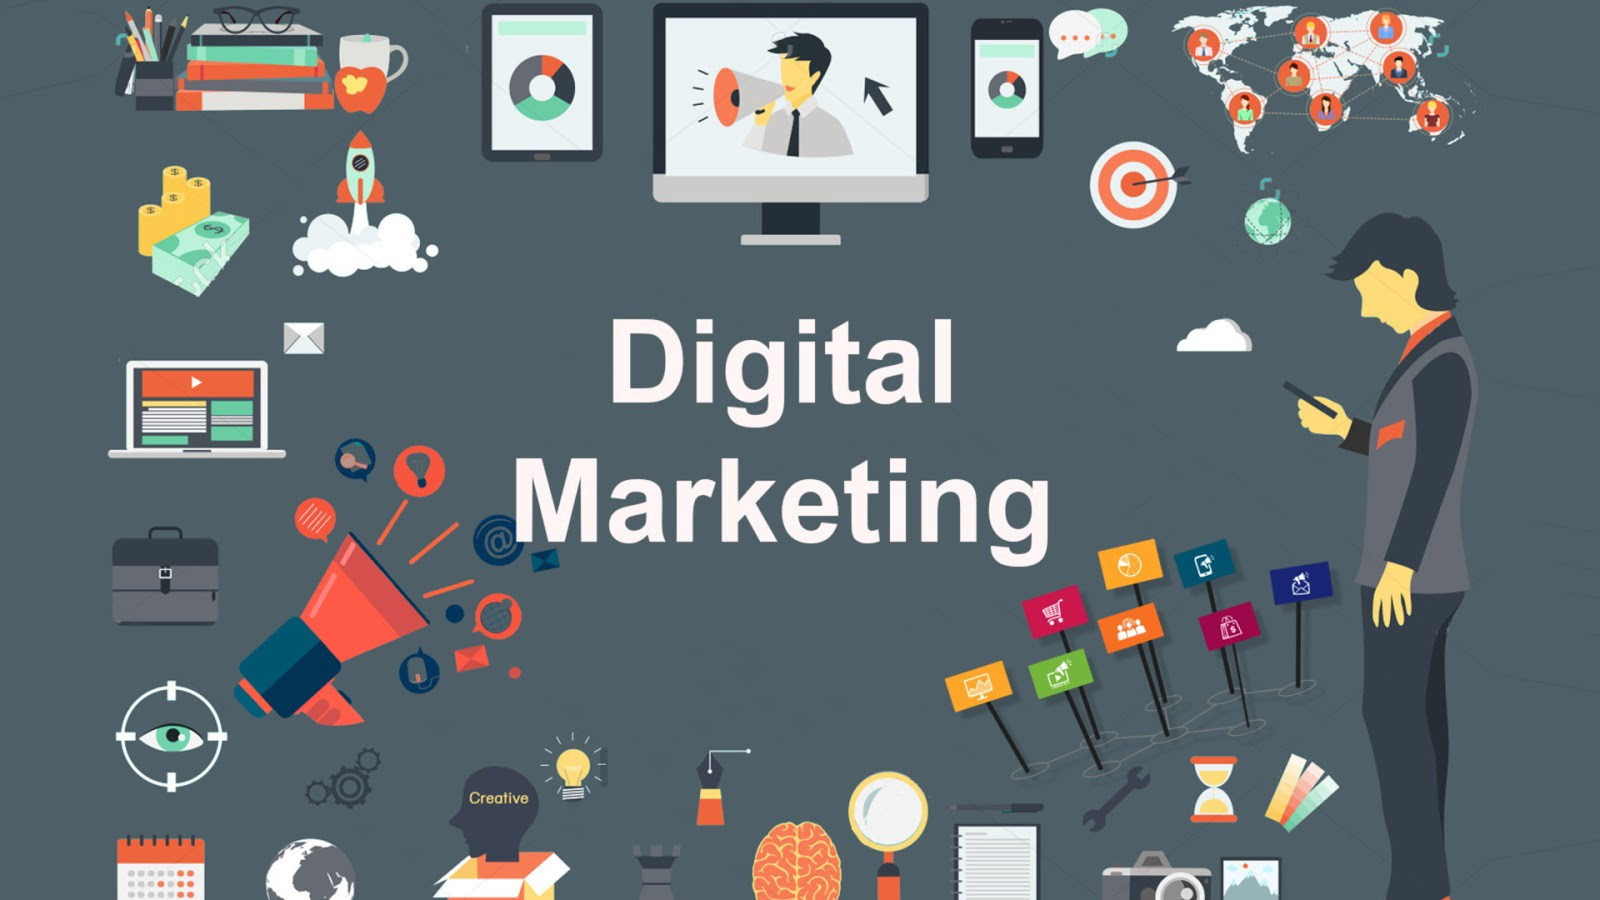 How to Be Successful With Digital Marketing